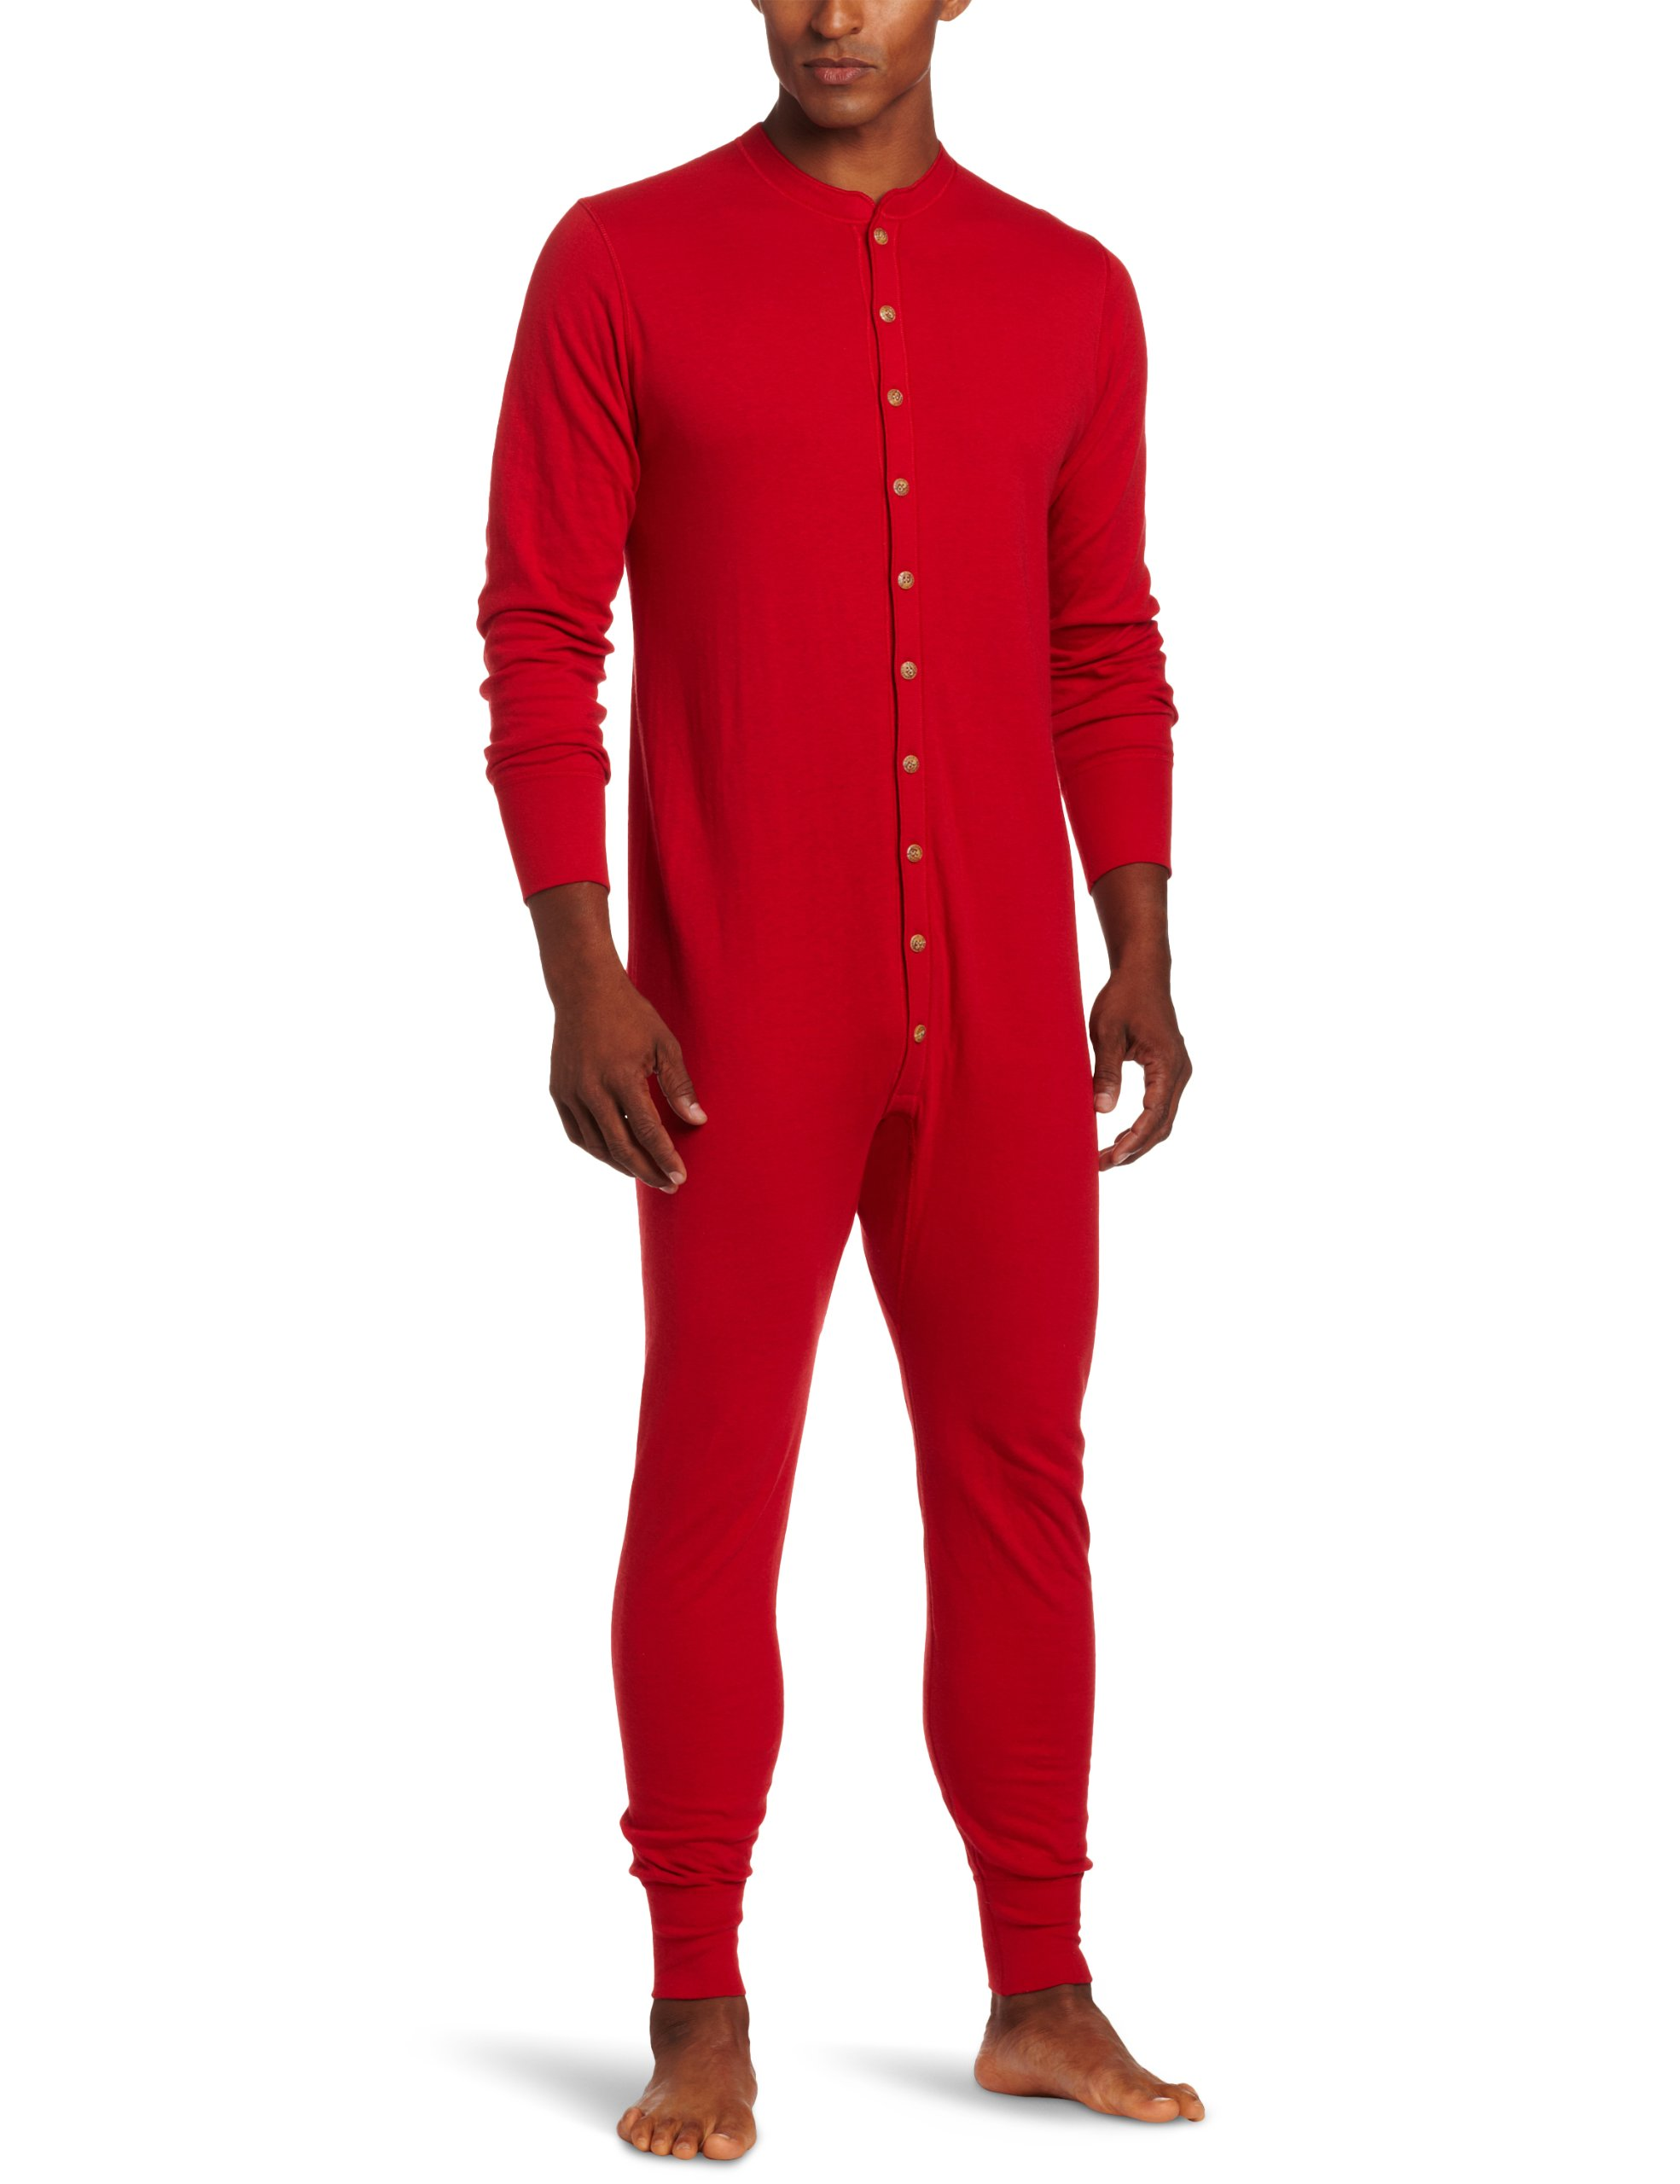 Duofold Men's Mid Weight Double Layer Thermal Union Suit, Red, Large by Duofold